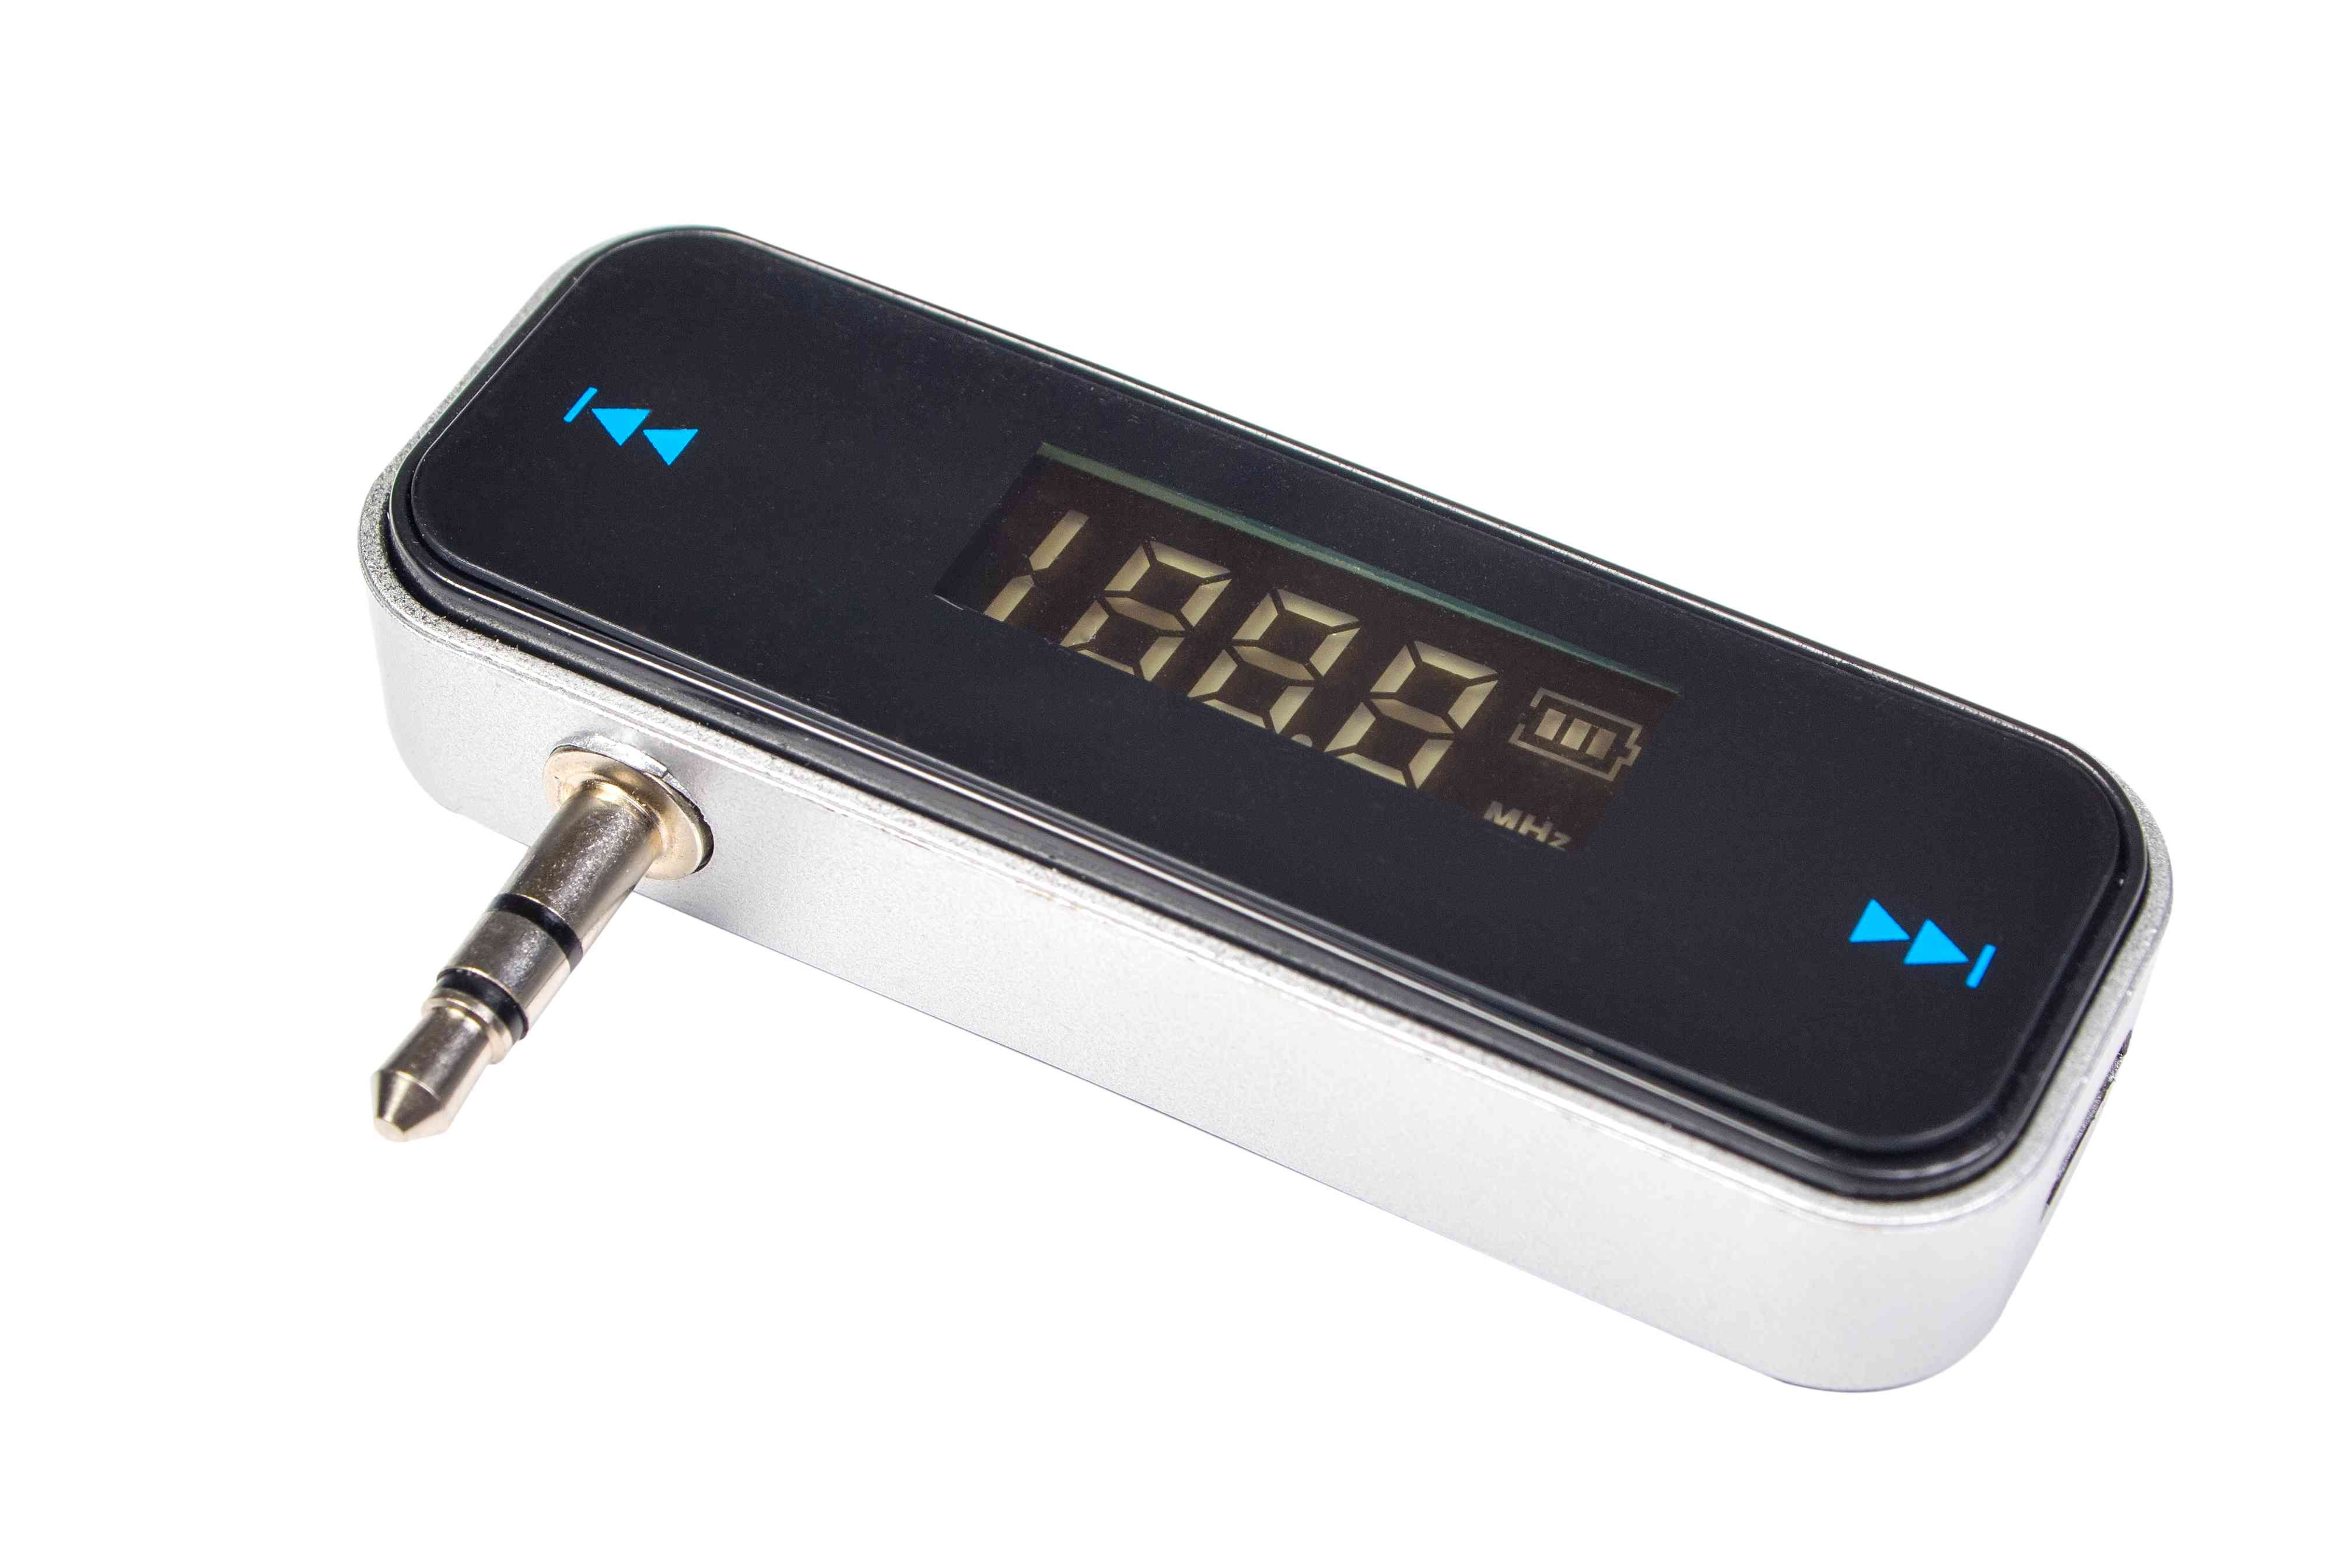 An FM transmitter with an audio plug and adjustable frequency